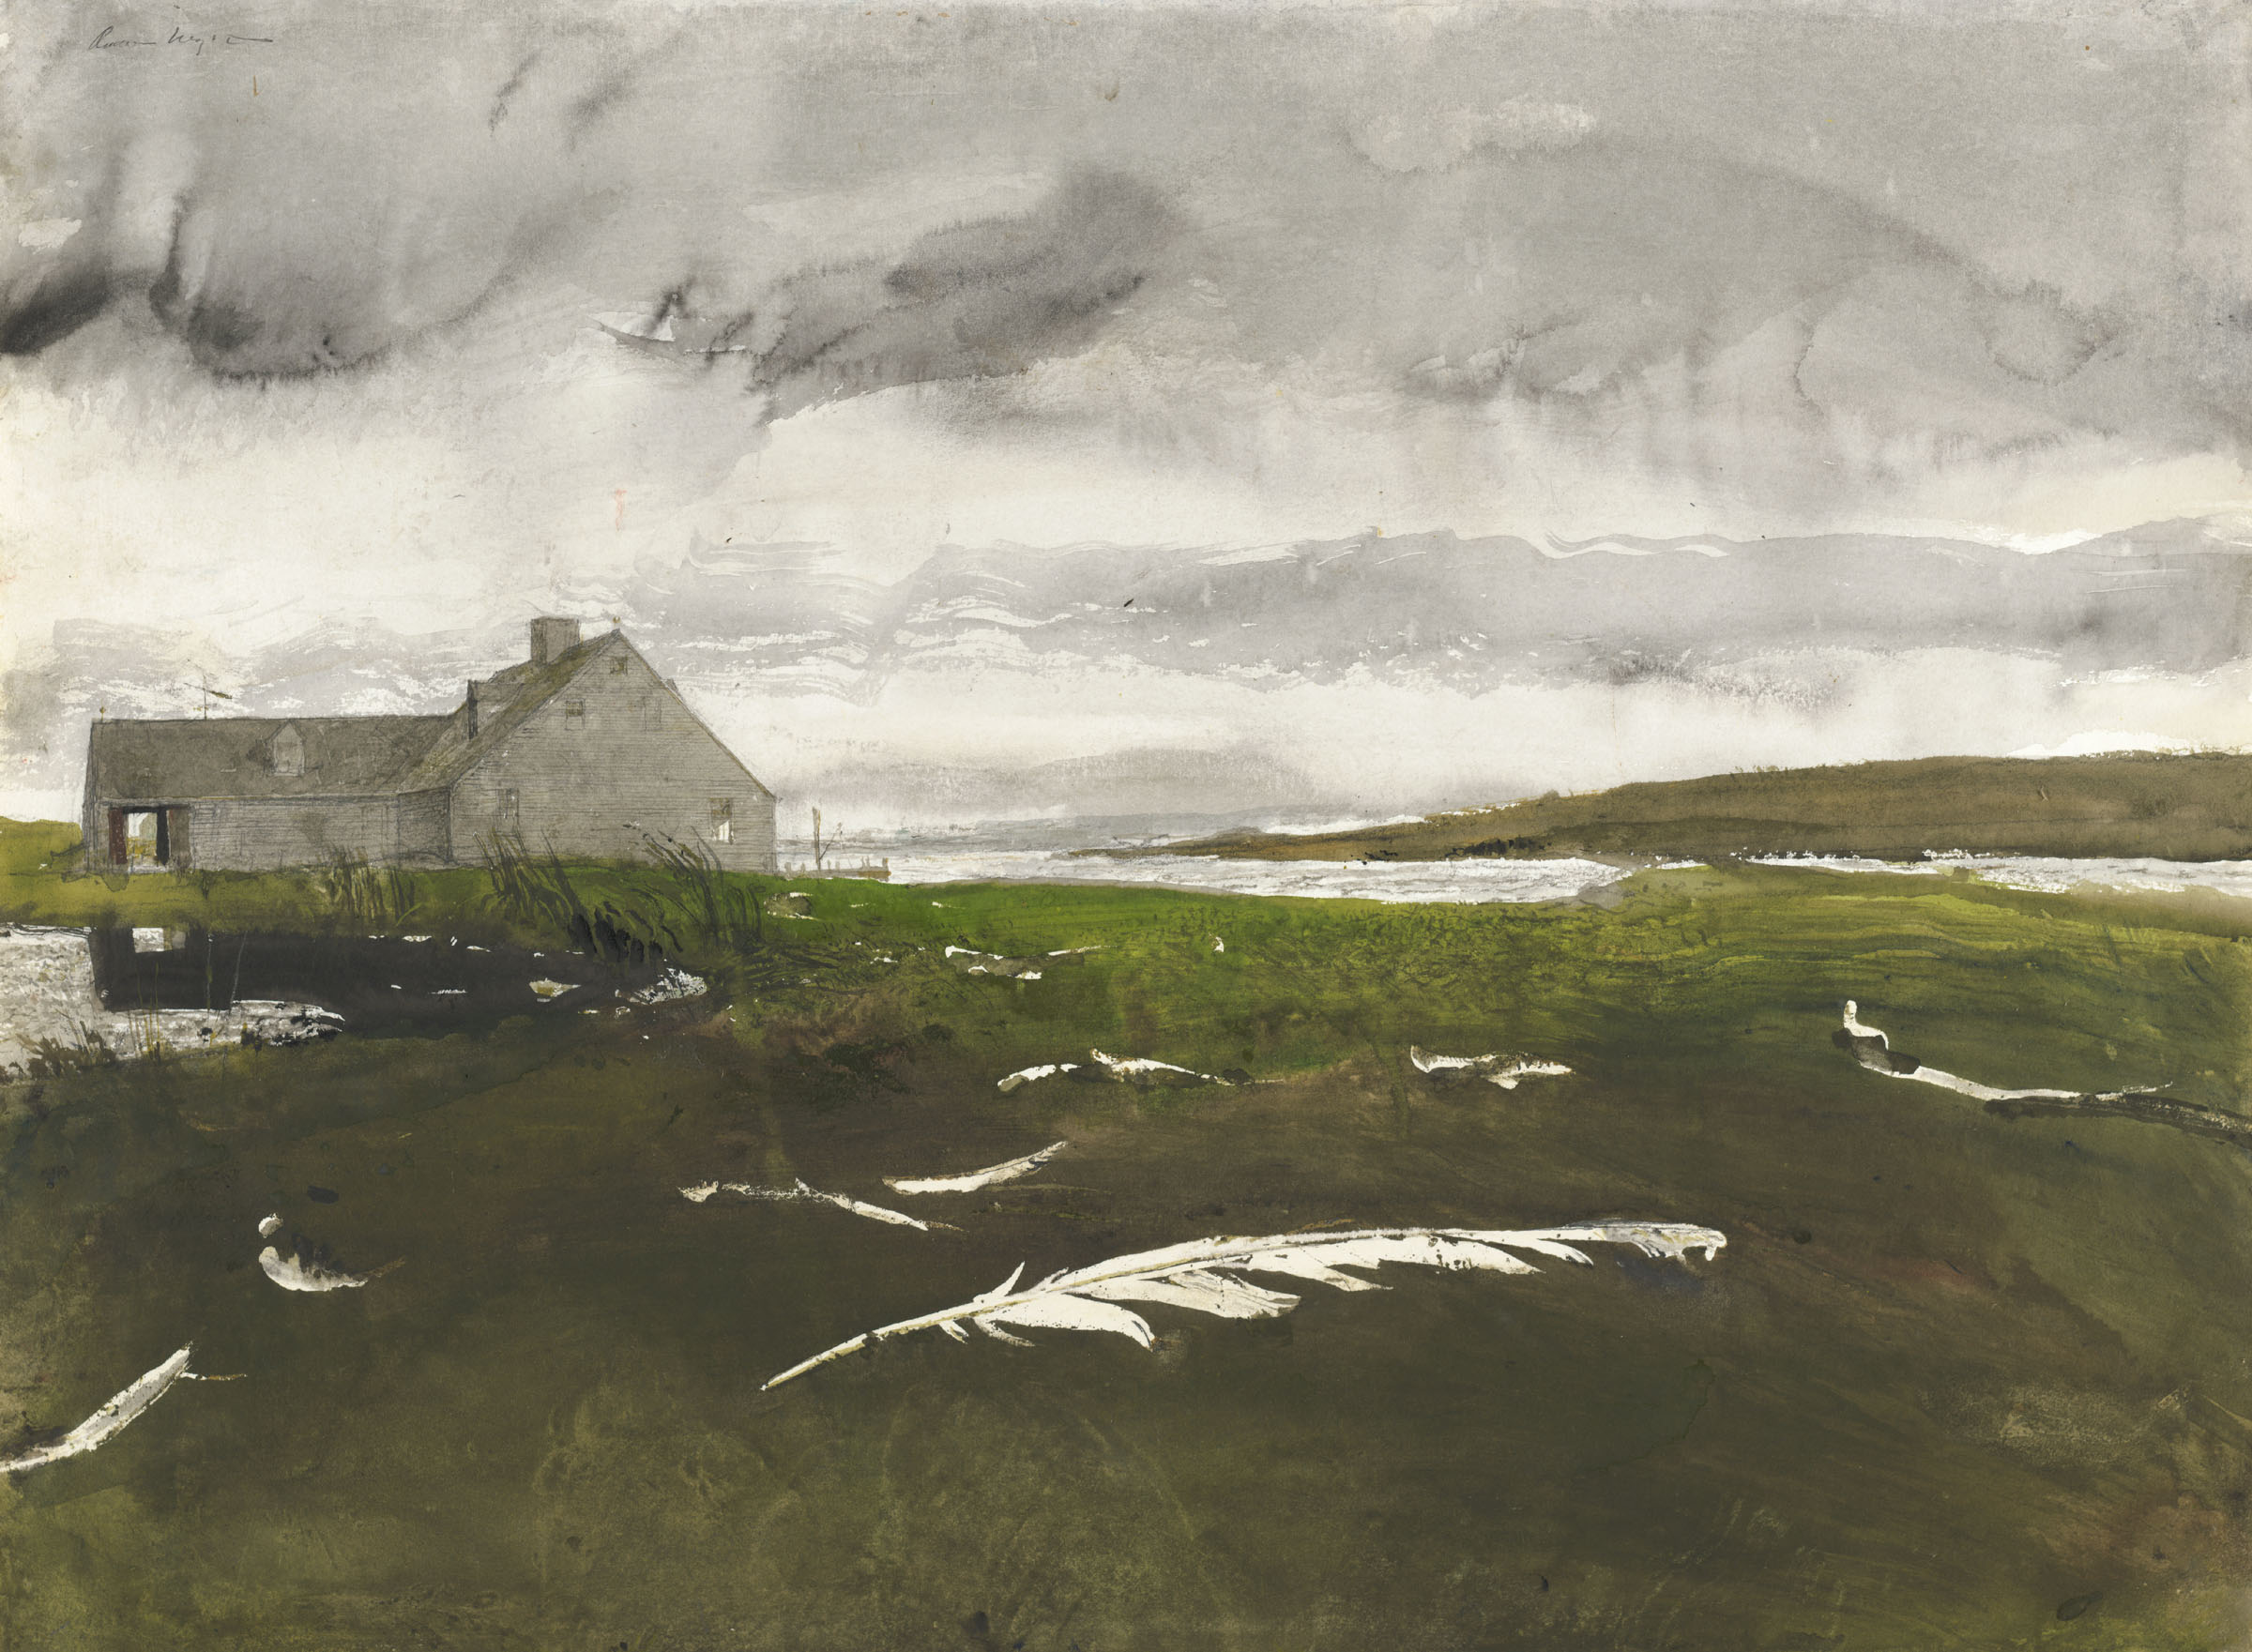 Andrew Wyeth at 100